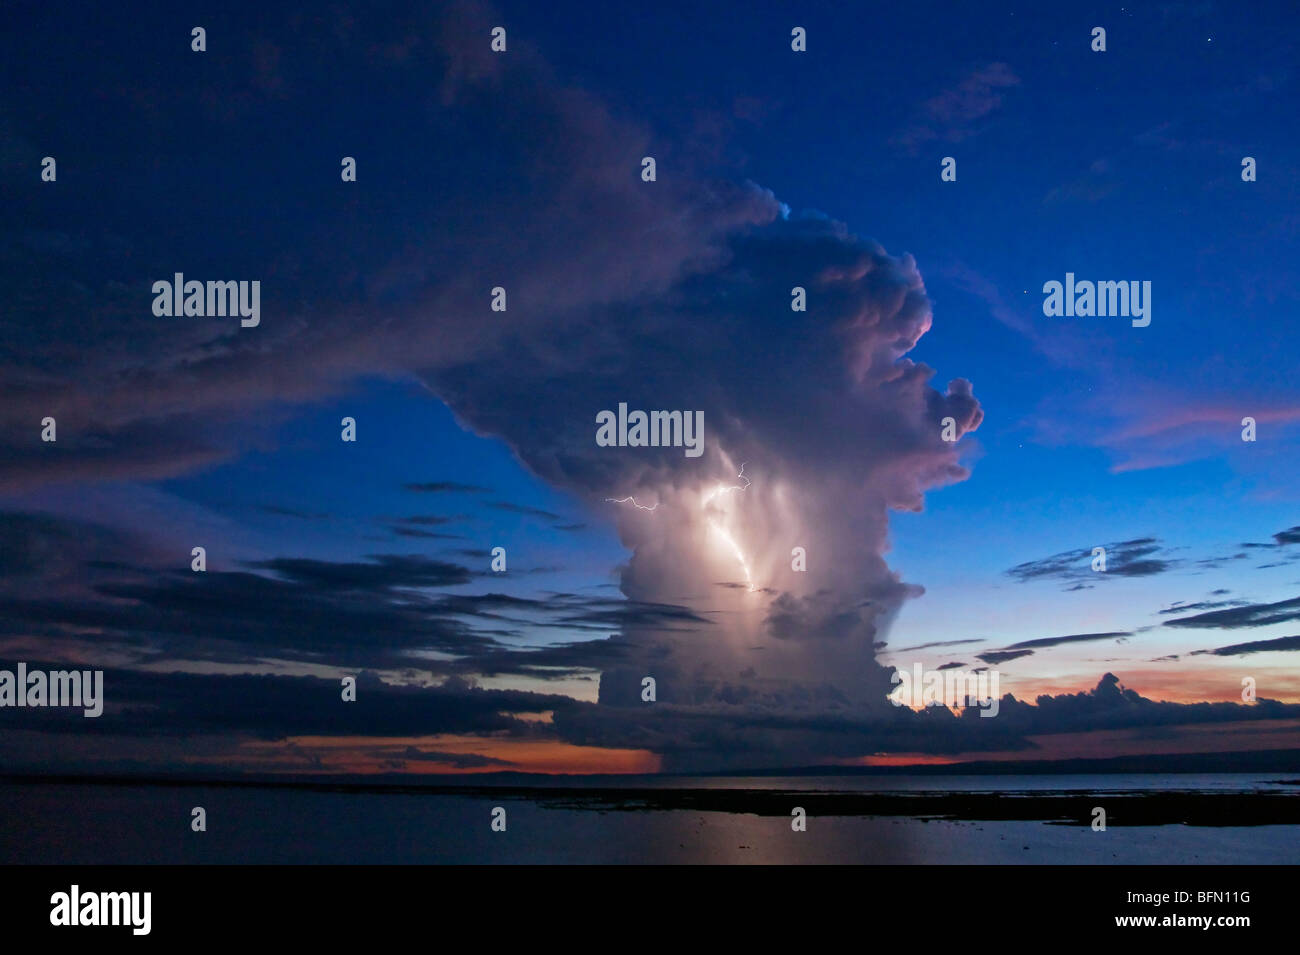 Kenya, Nyanza District. A violent evening storm with forked lightning over Lake Victoria . - Stock Image